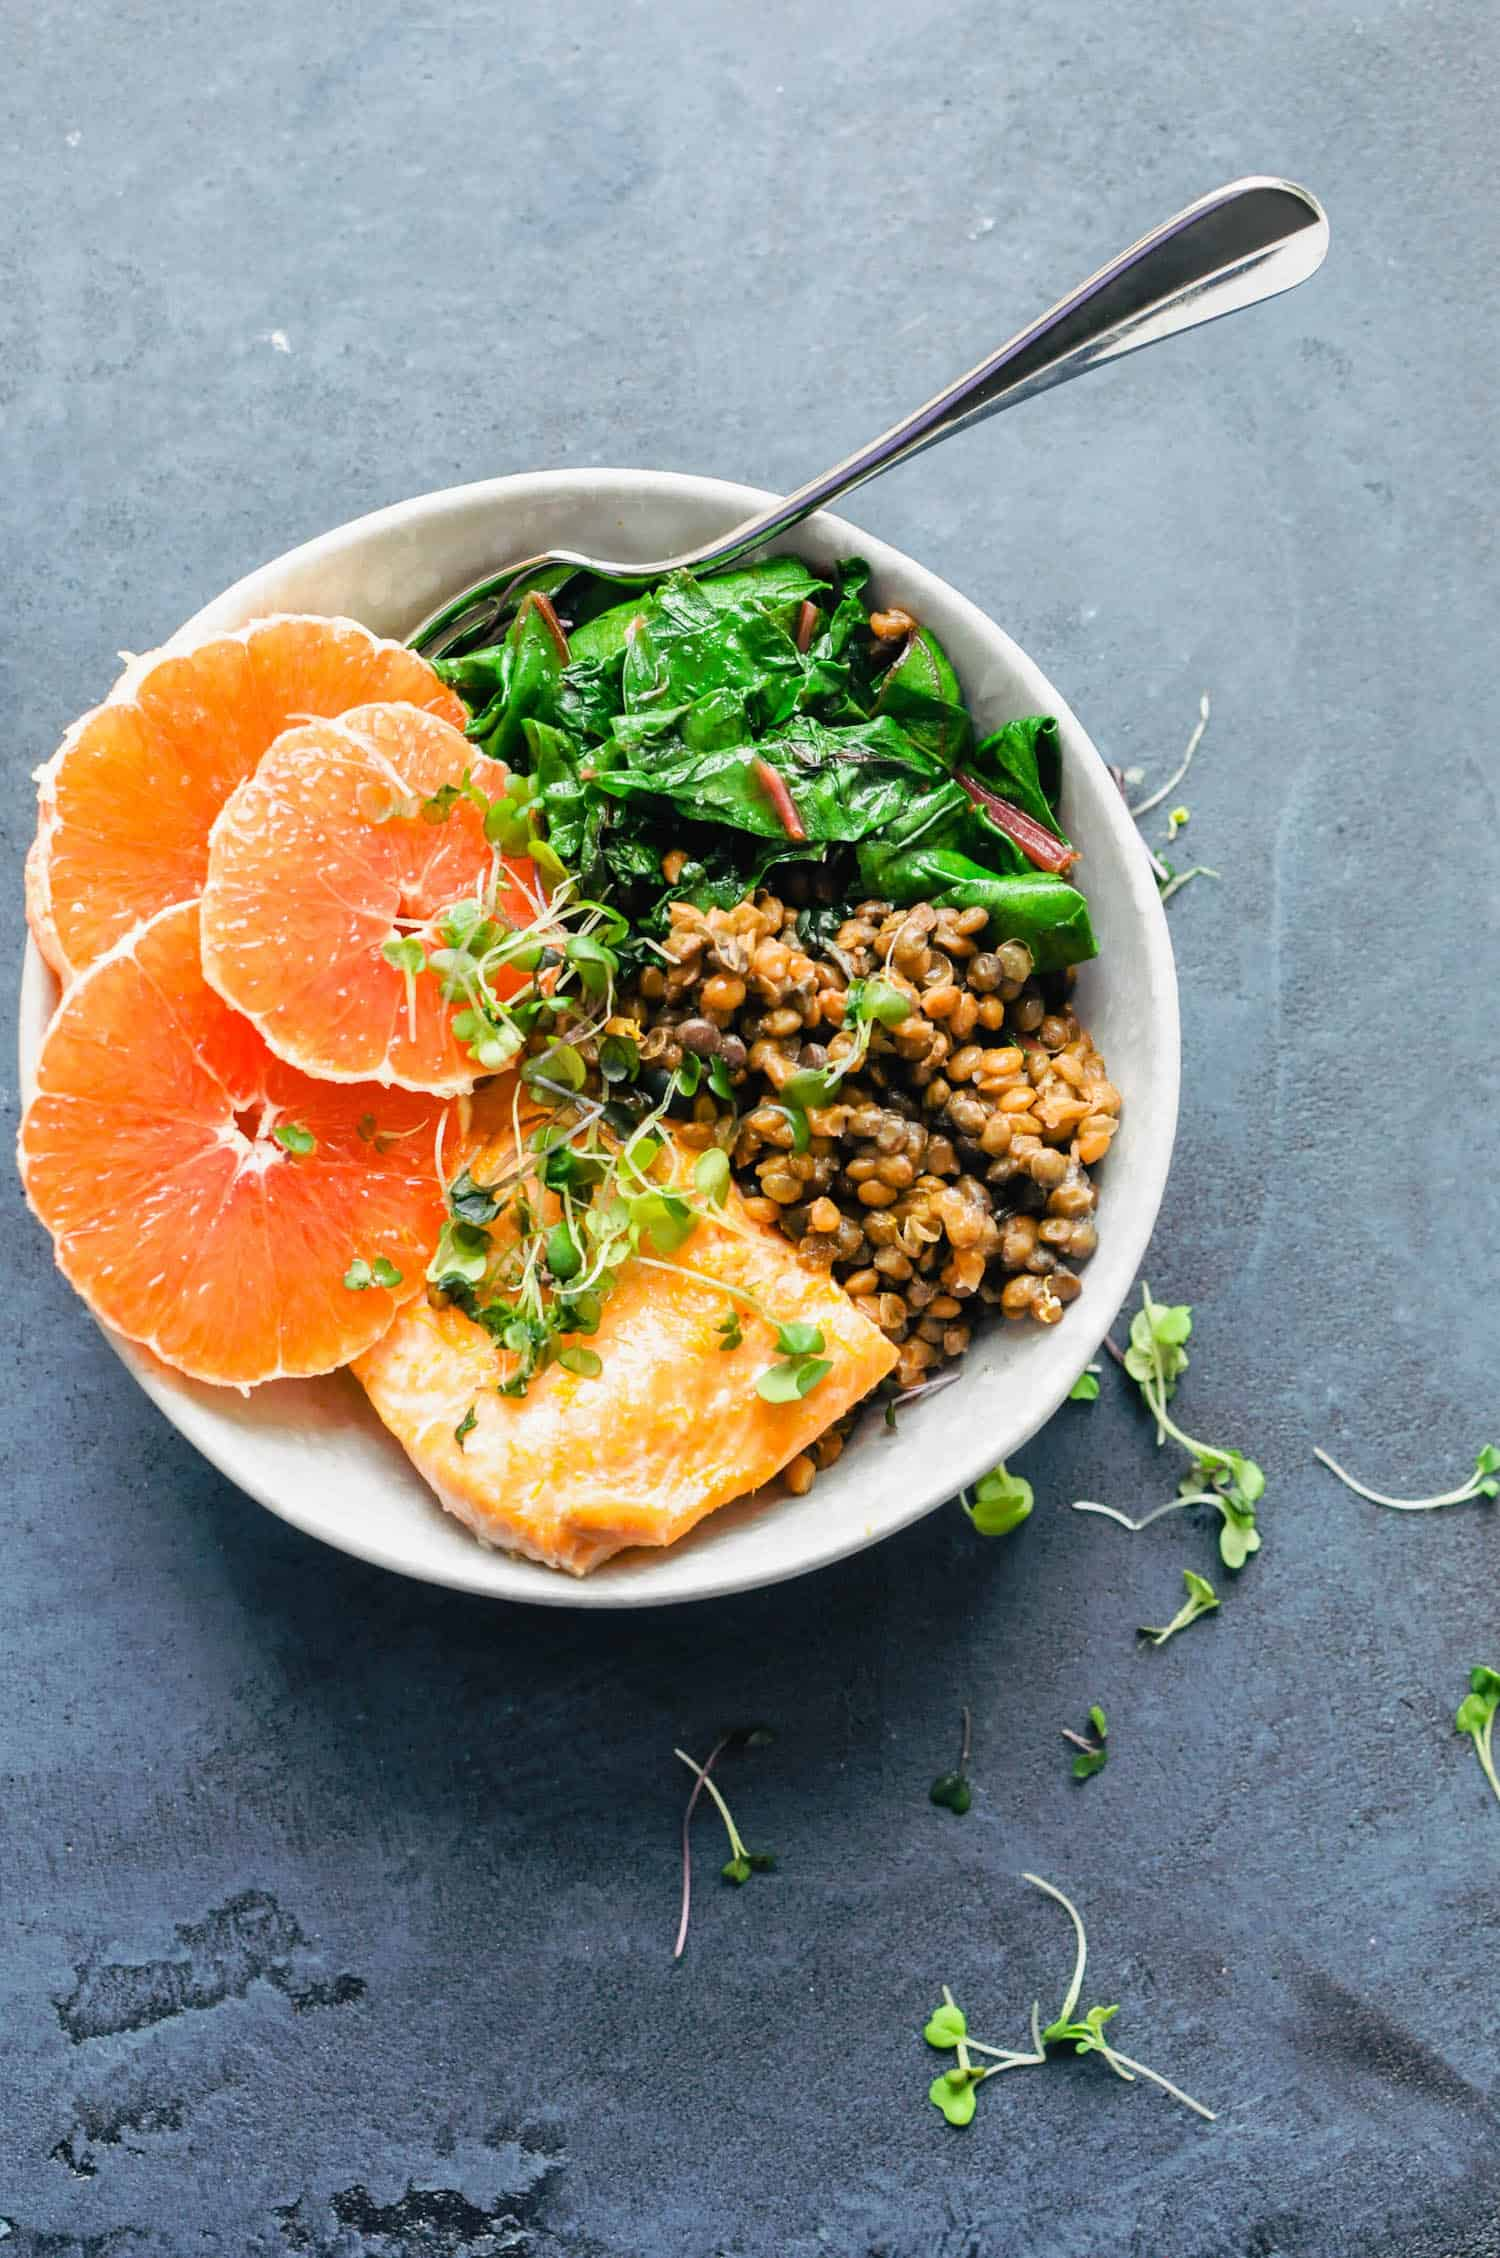 oranges, salmon, greens, lentils in a bowl